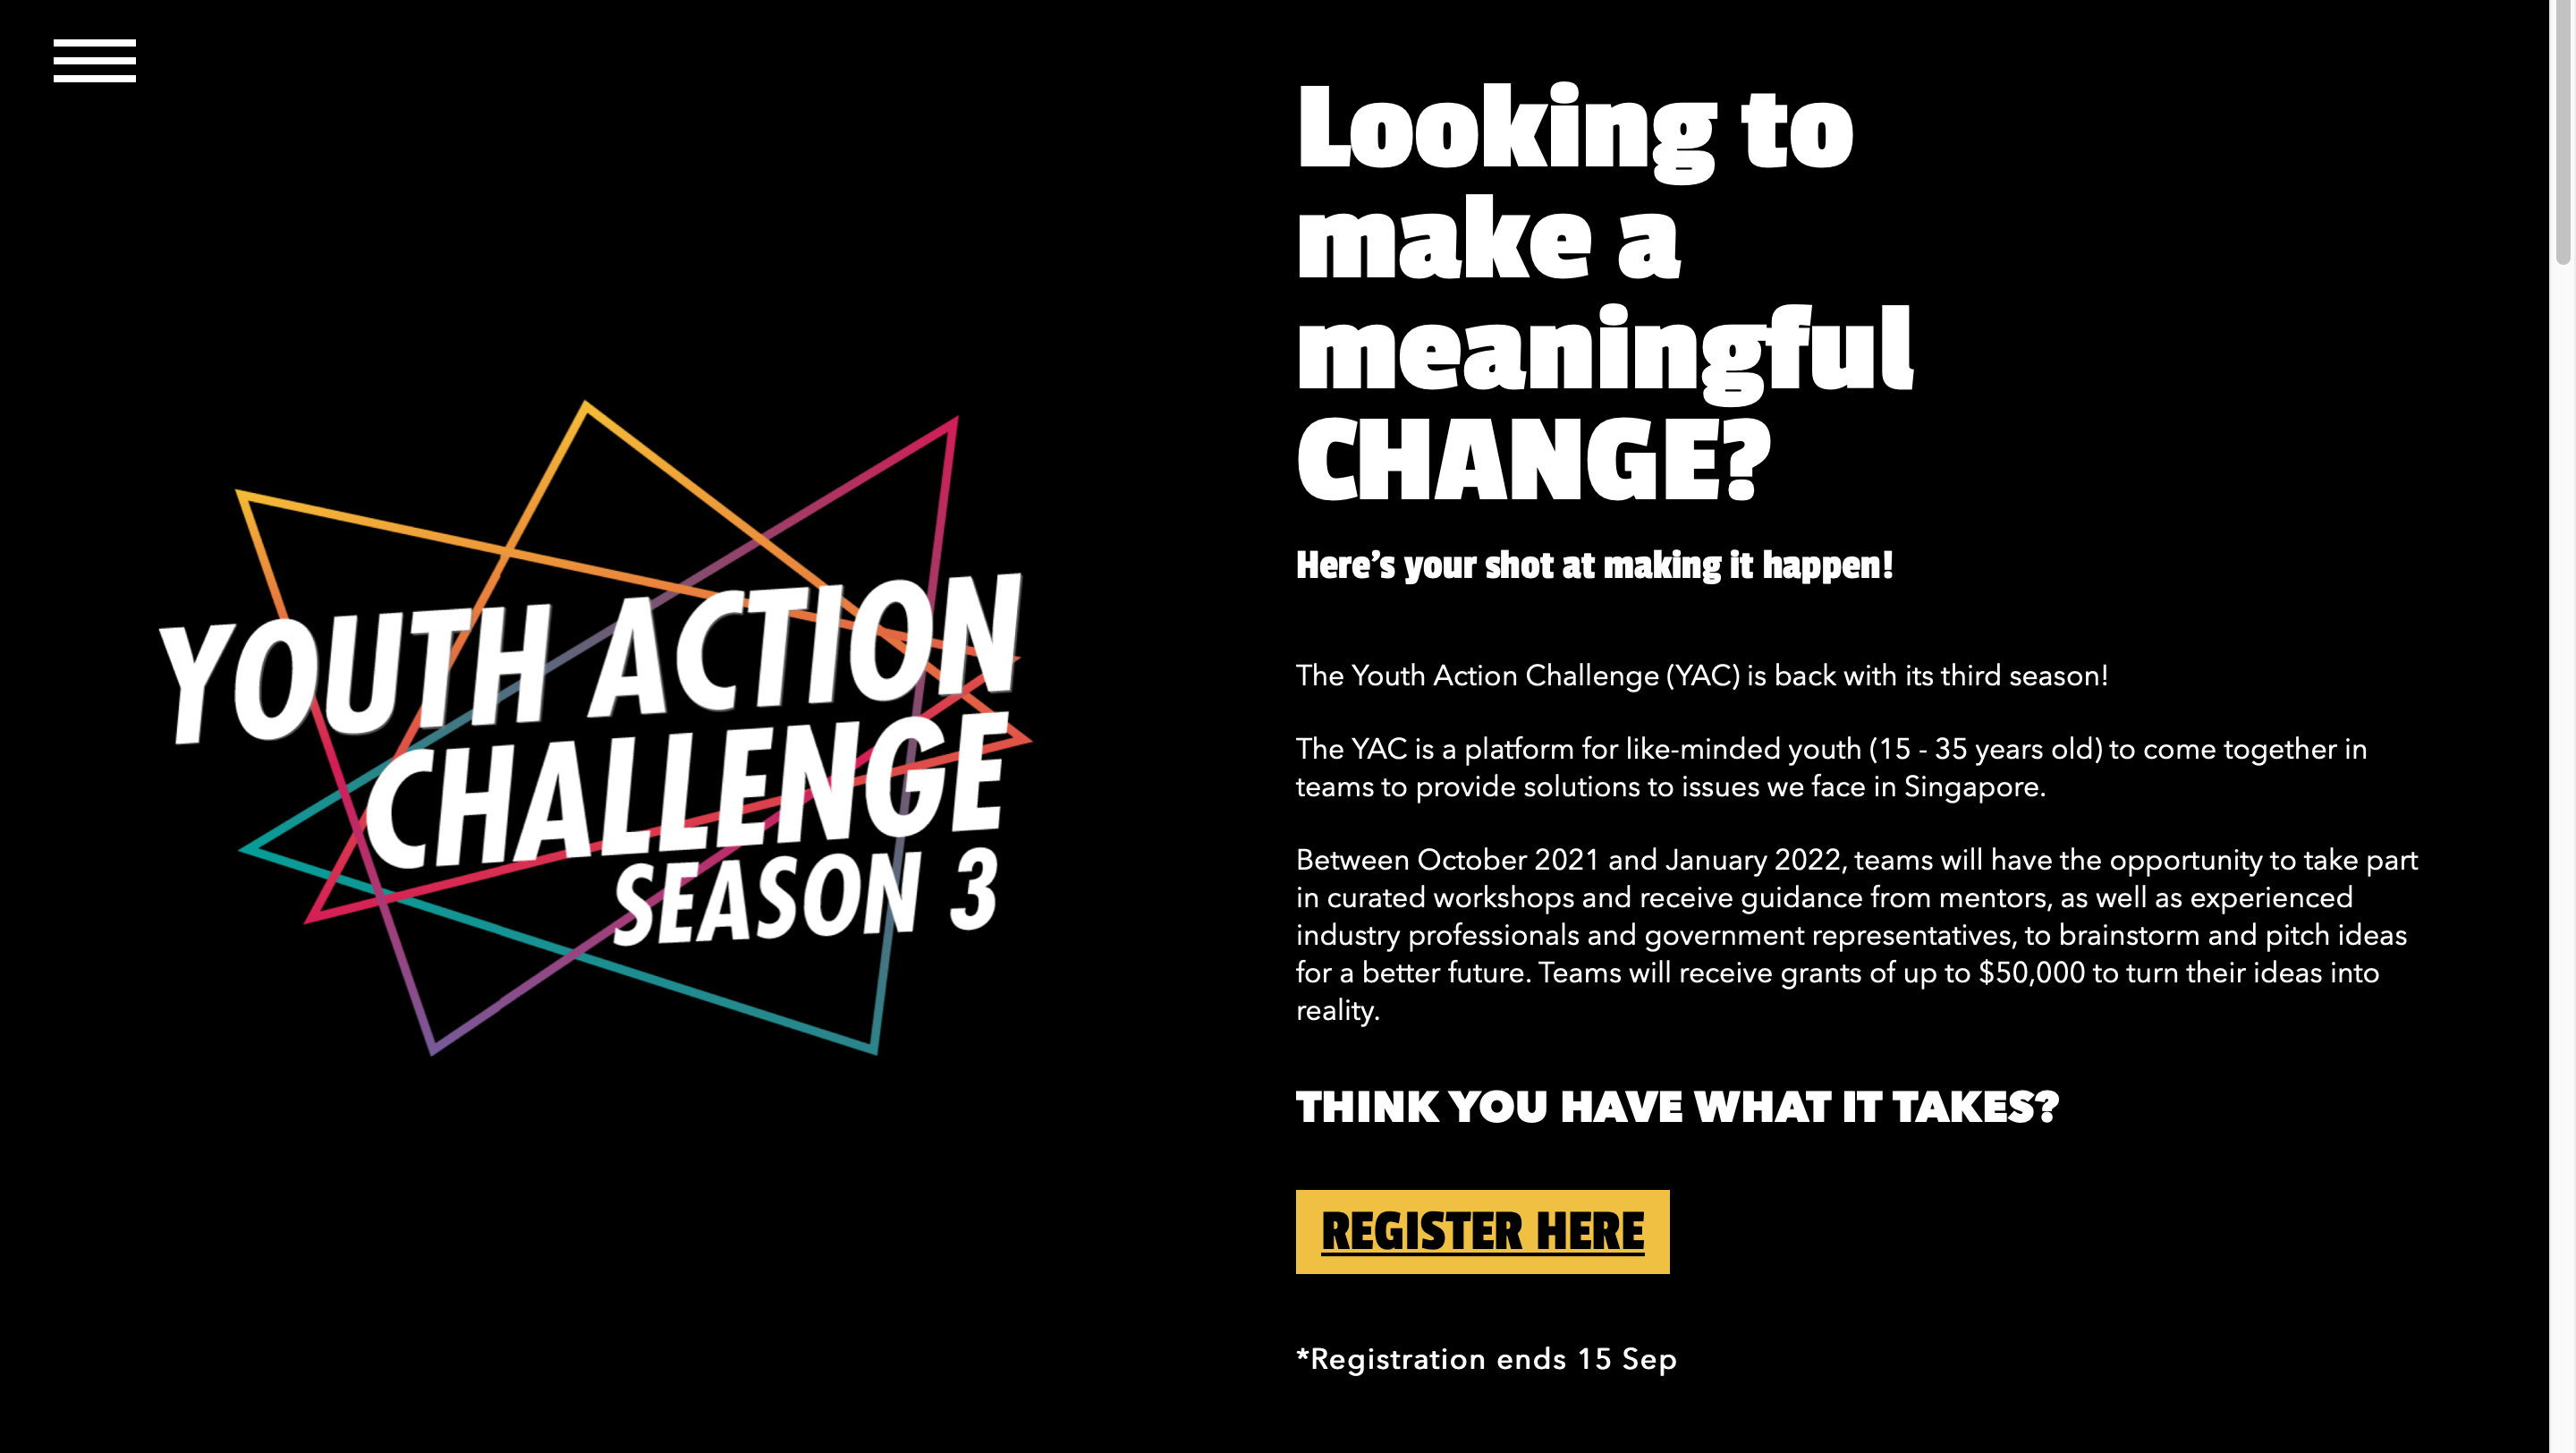 Youth action challenge